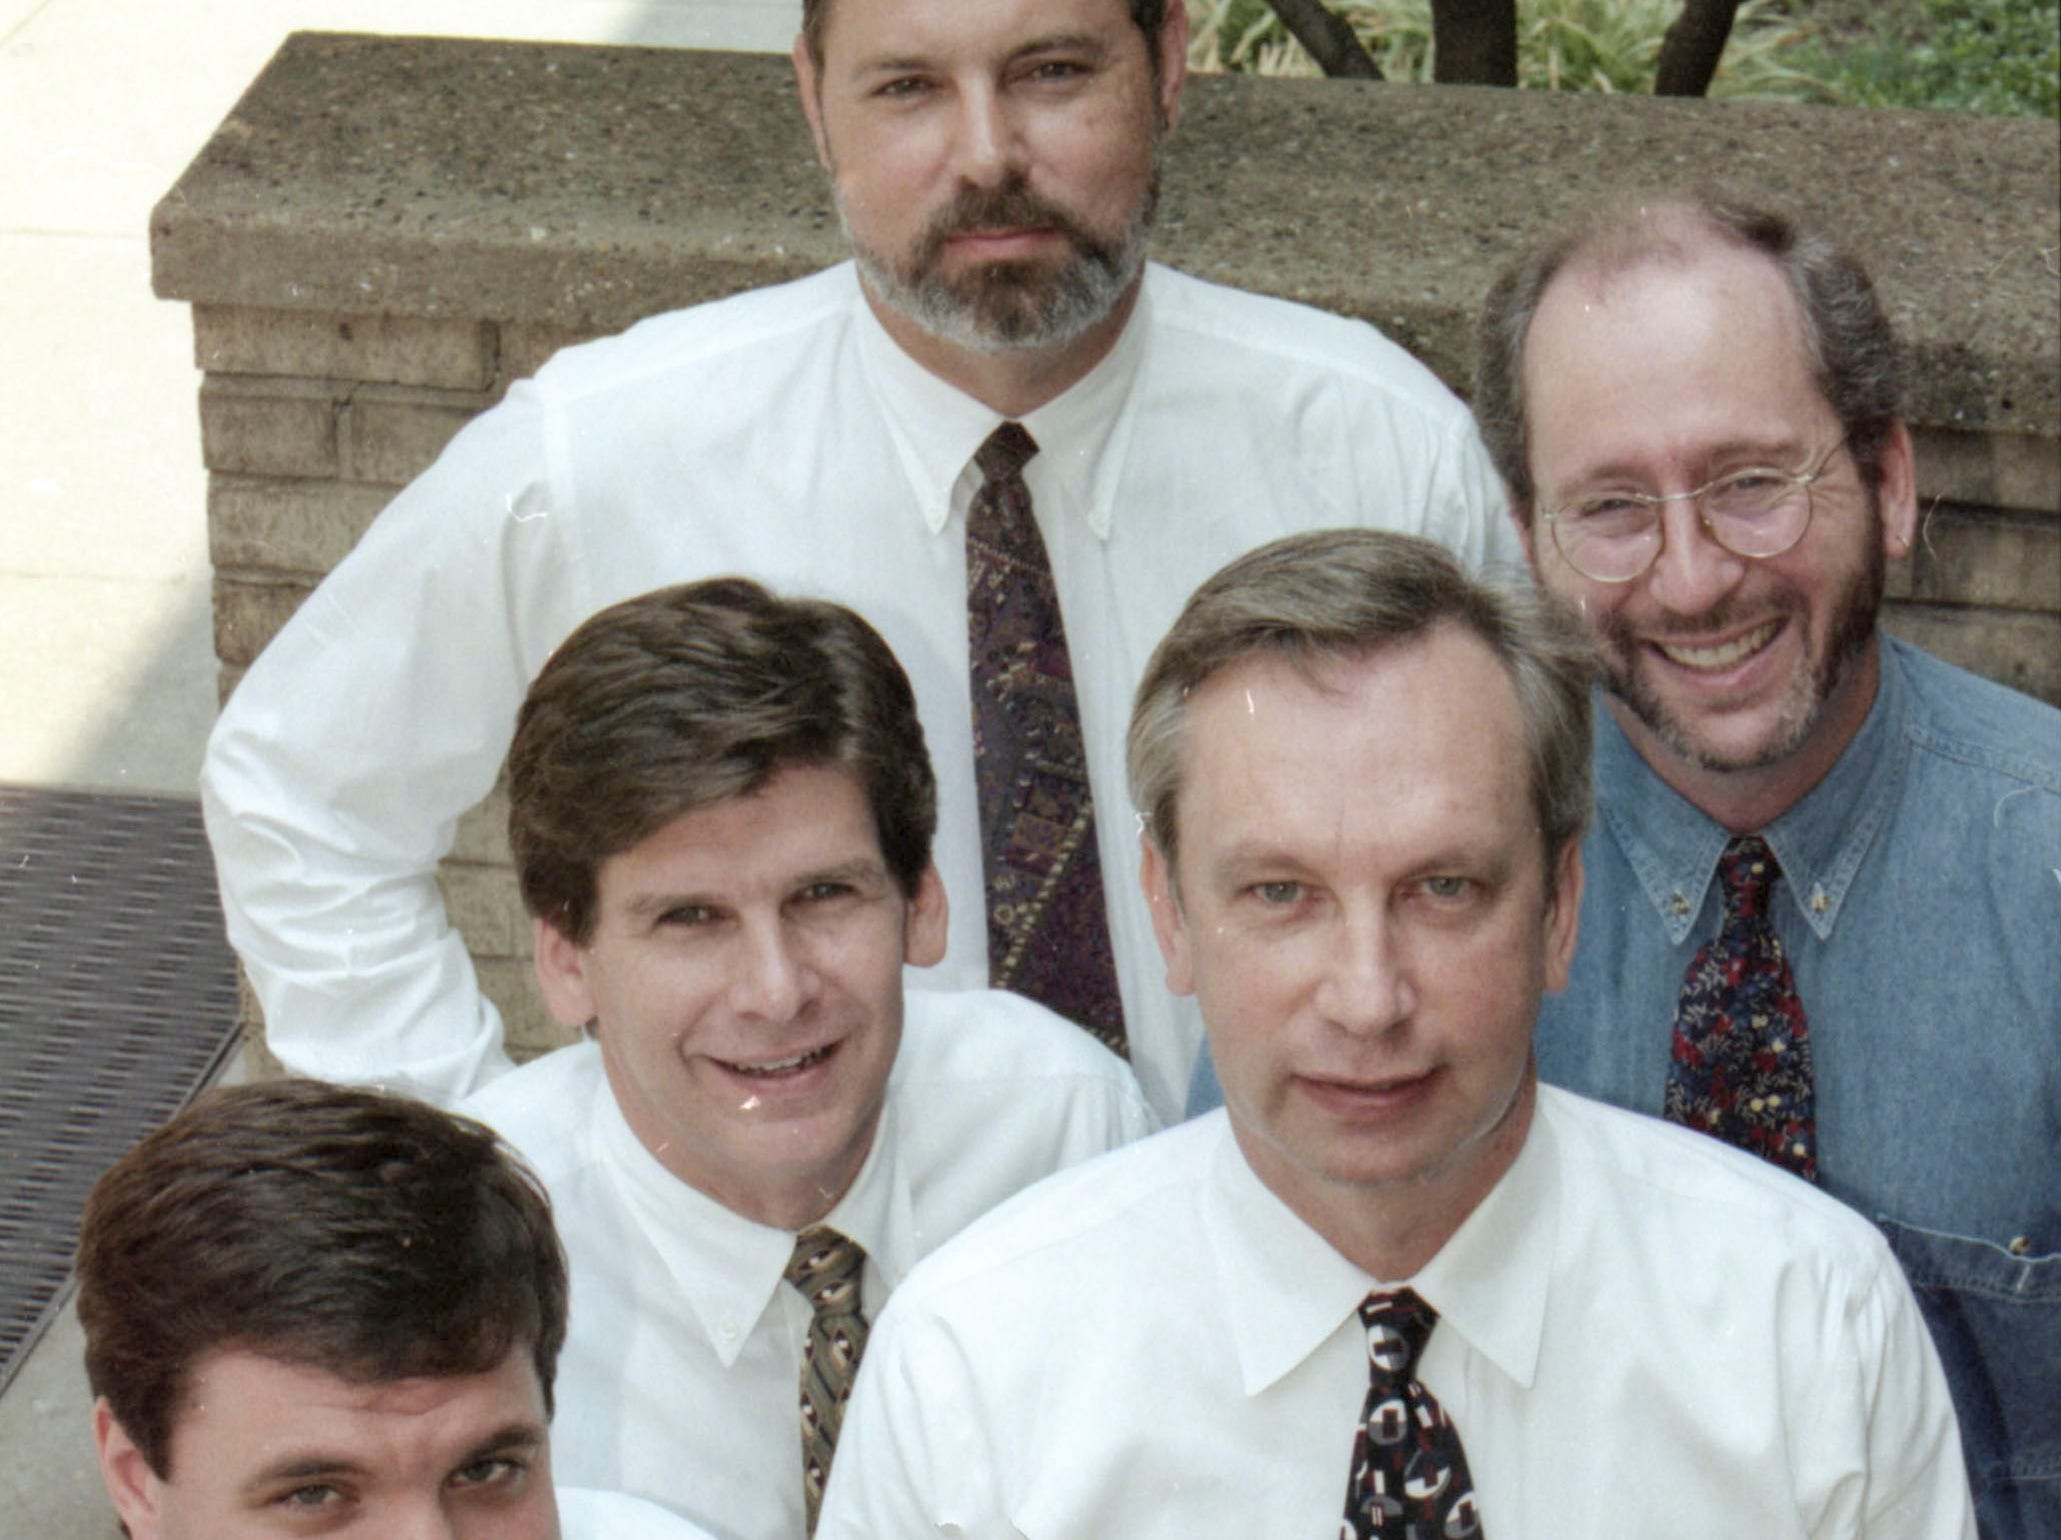 News Sentinel sports department in 2000. From left, Mike Griffith, Gary Lundy, Mike Strange, and Dan Fleser.